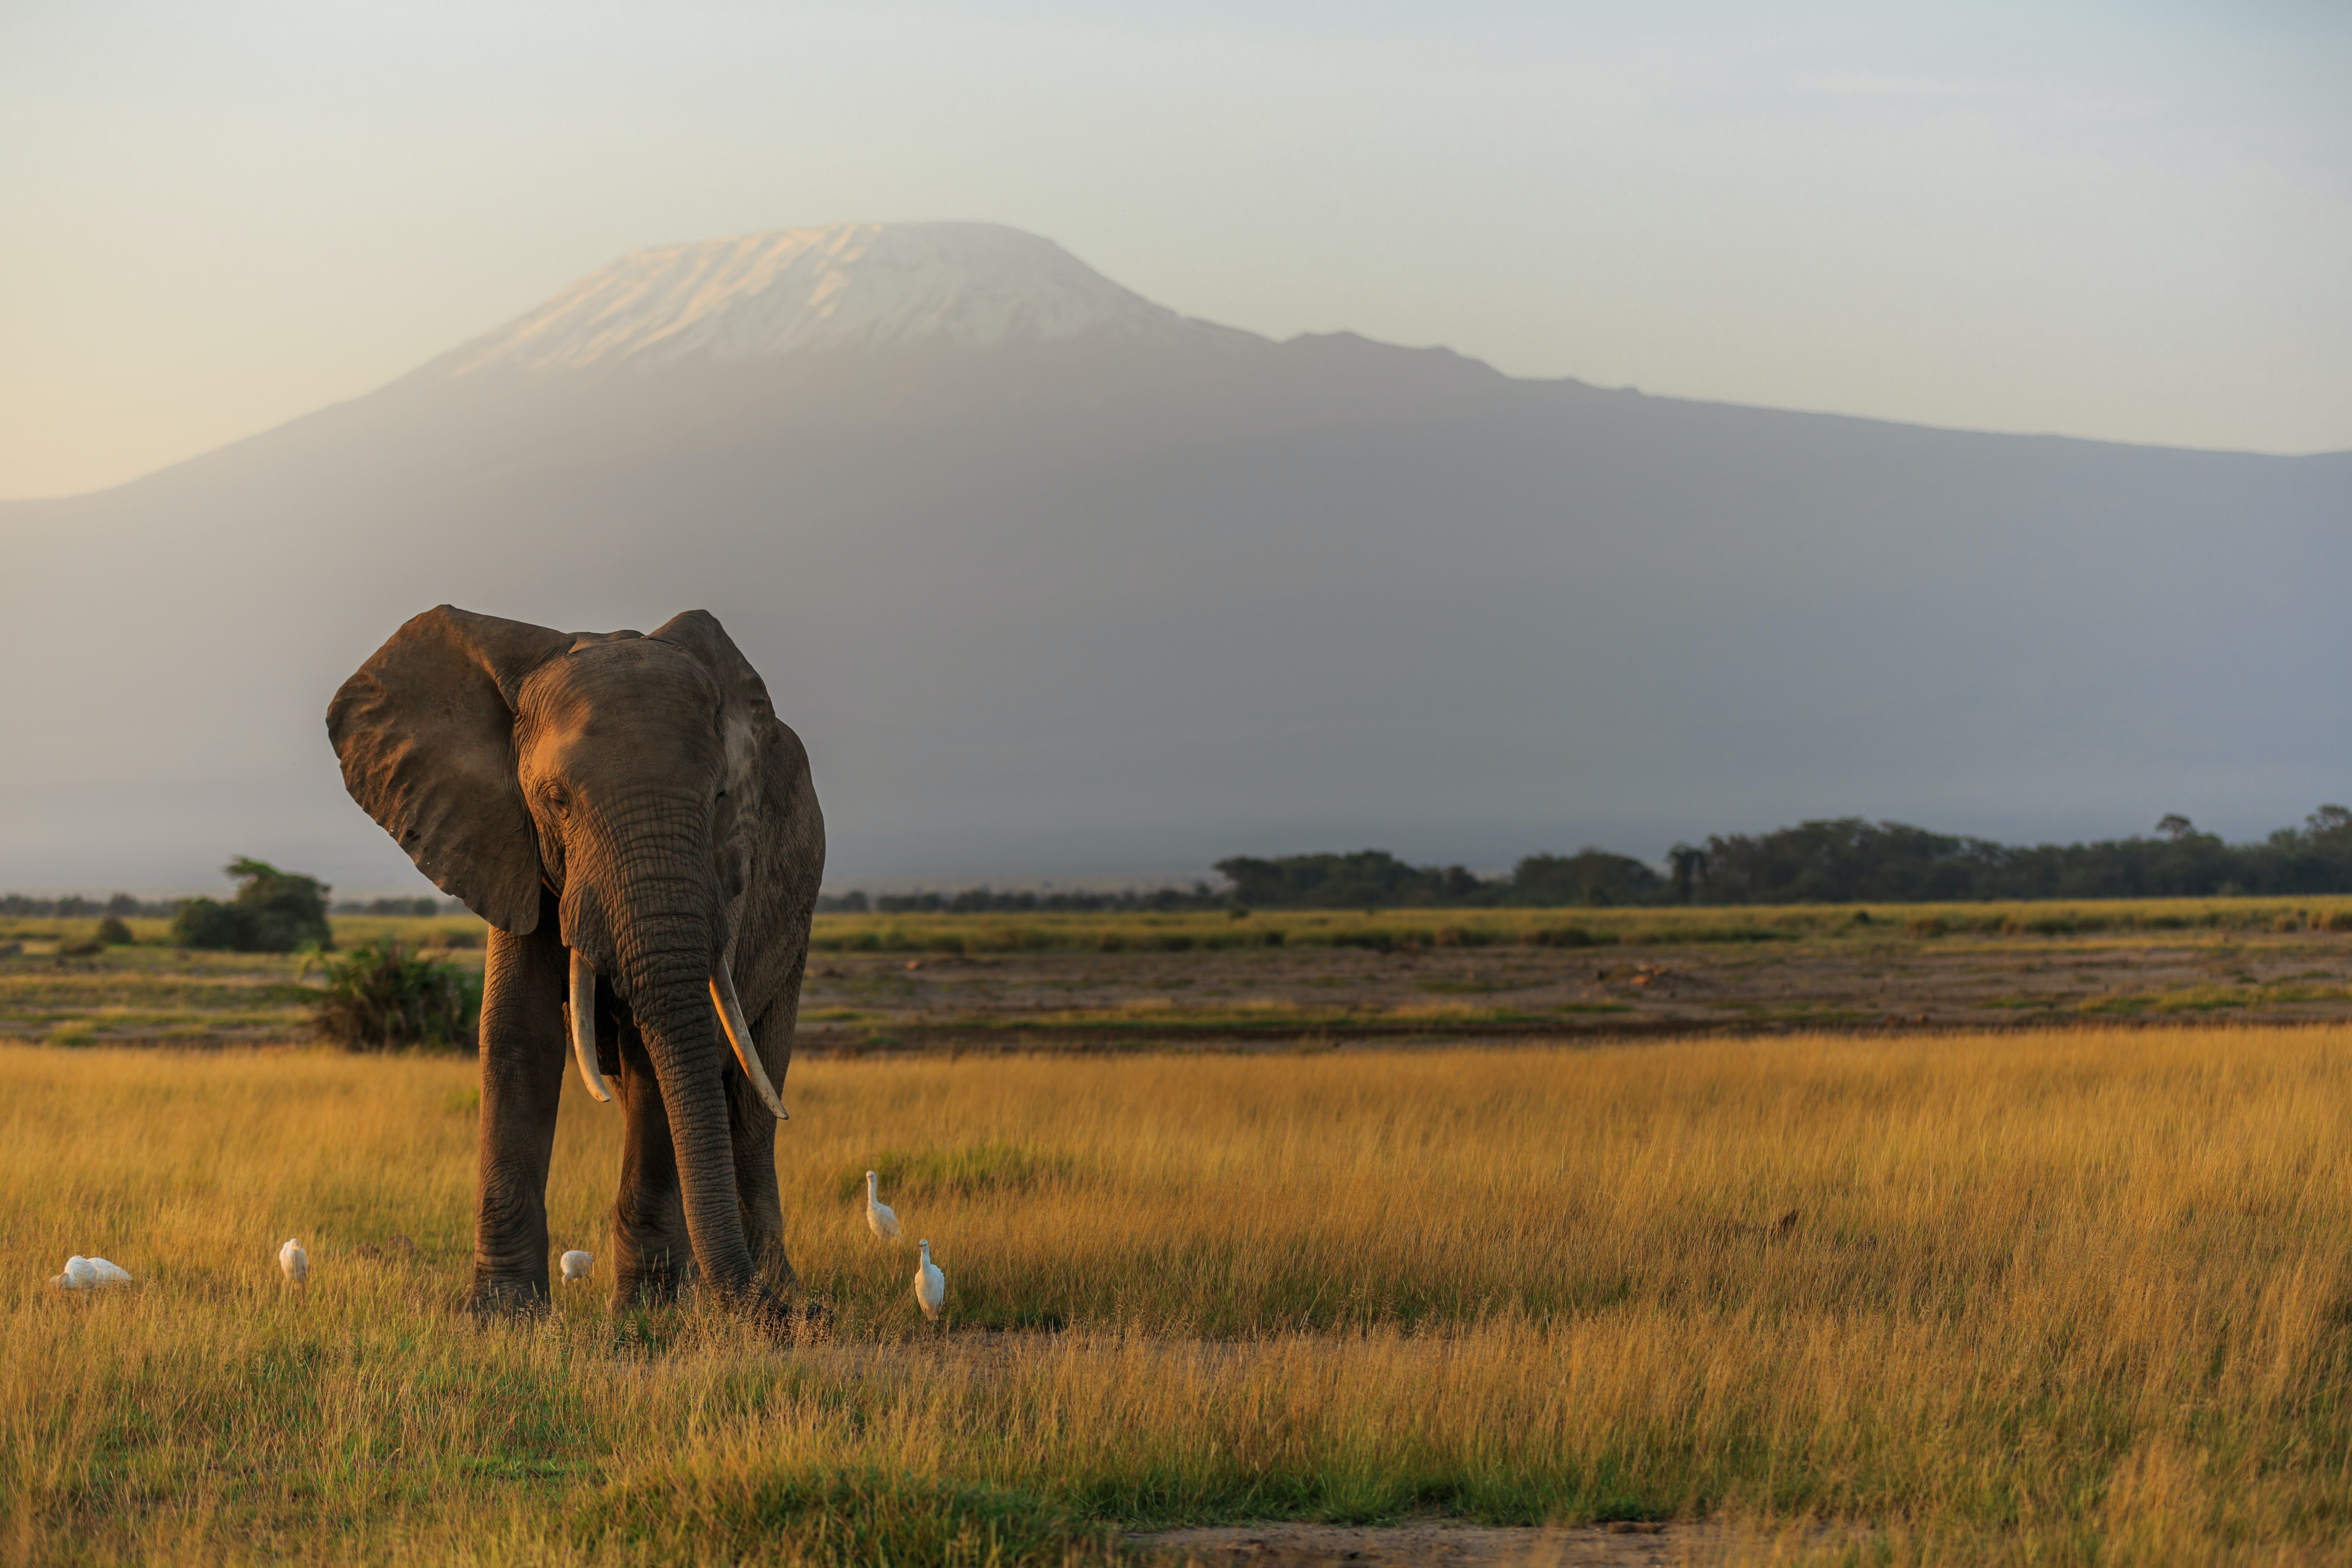 mt kilimanjaro national park travel